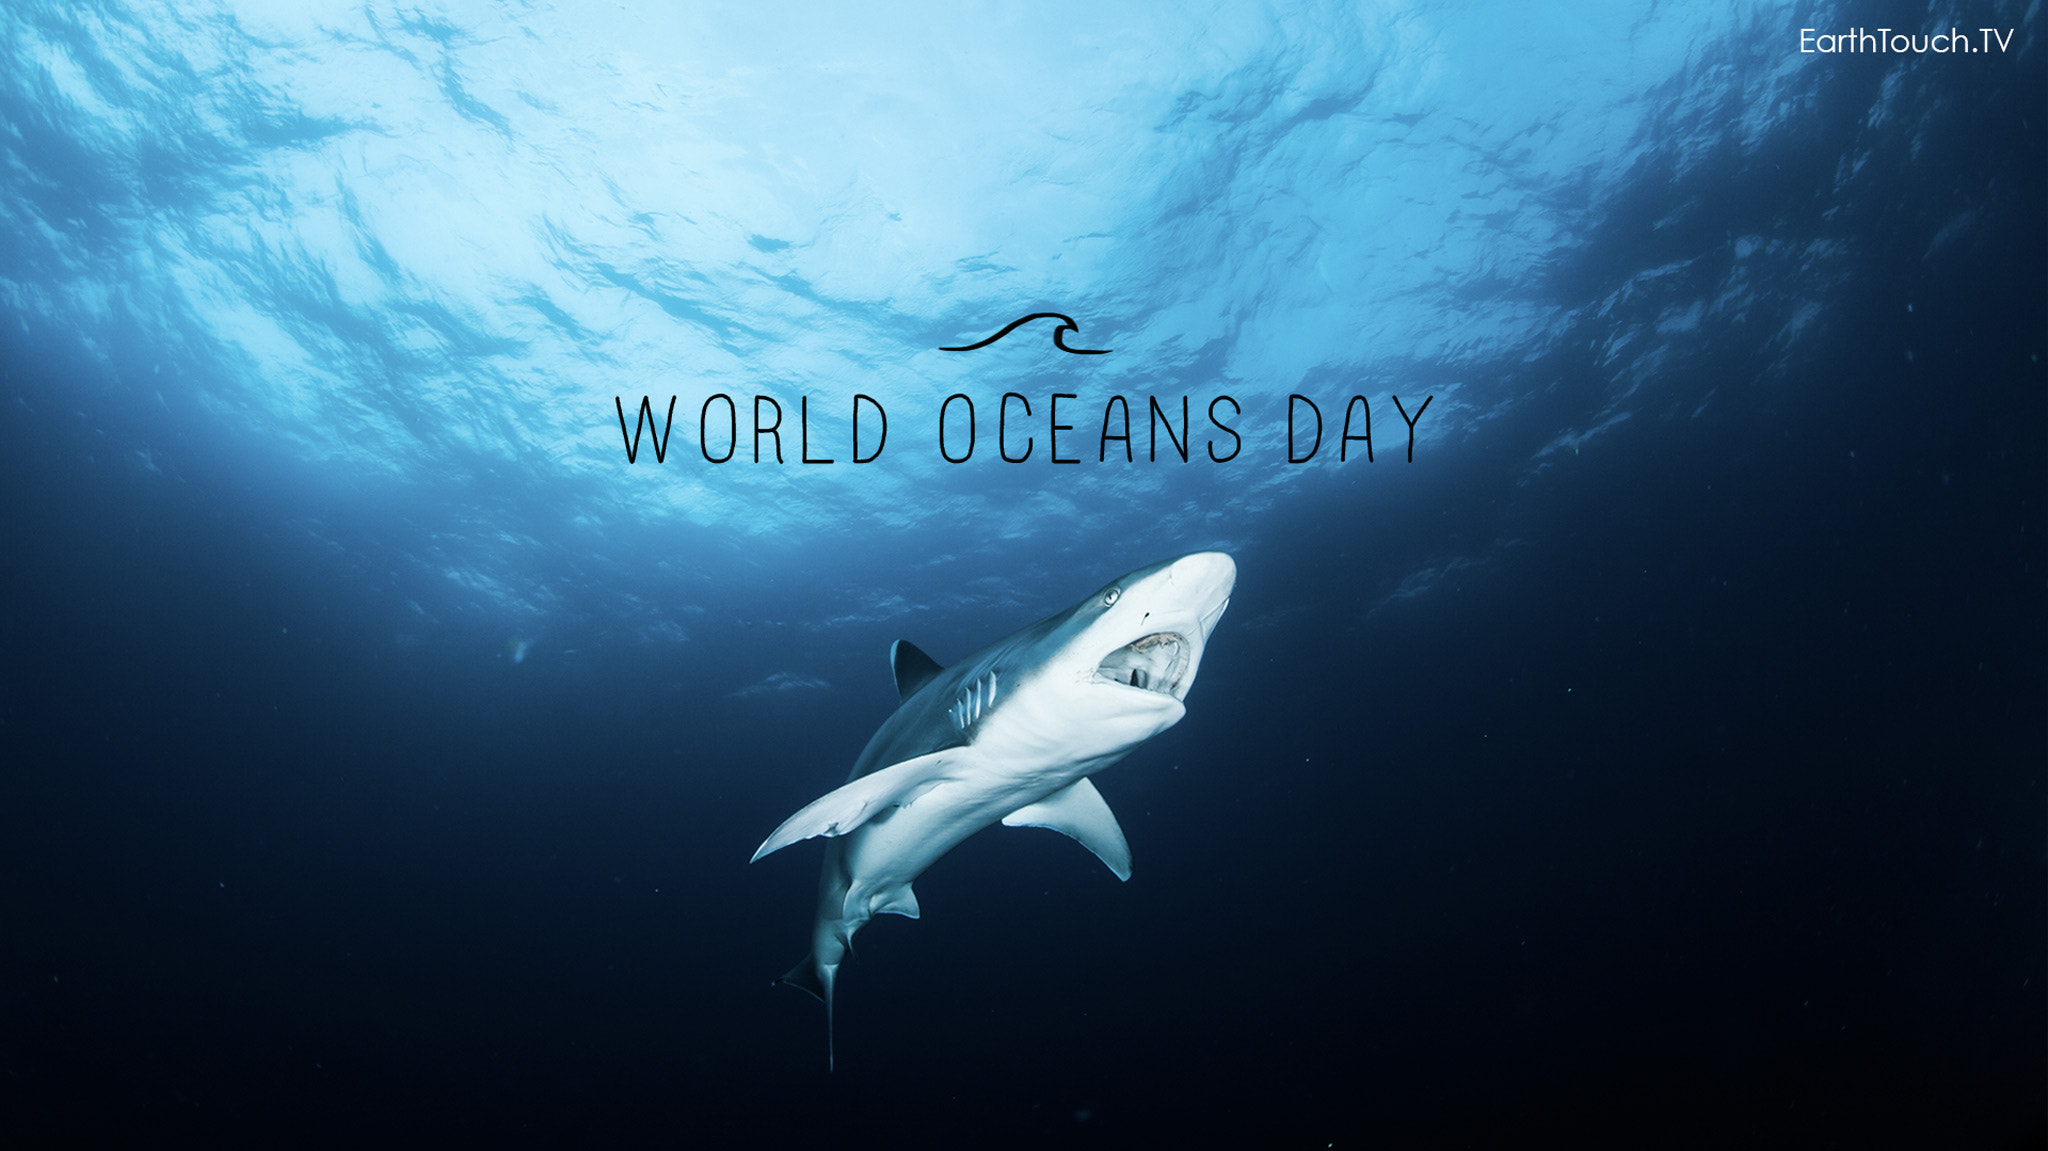 Photograph In Celebration Of World Oceans Day by Earth Touch on 500px